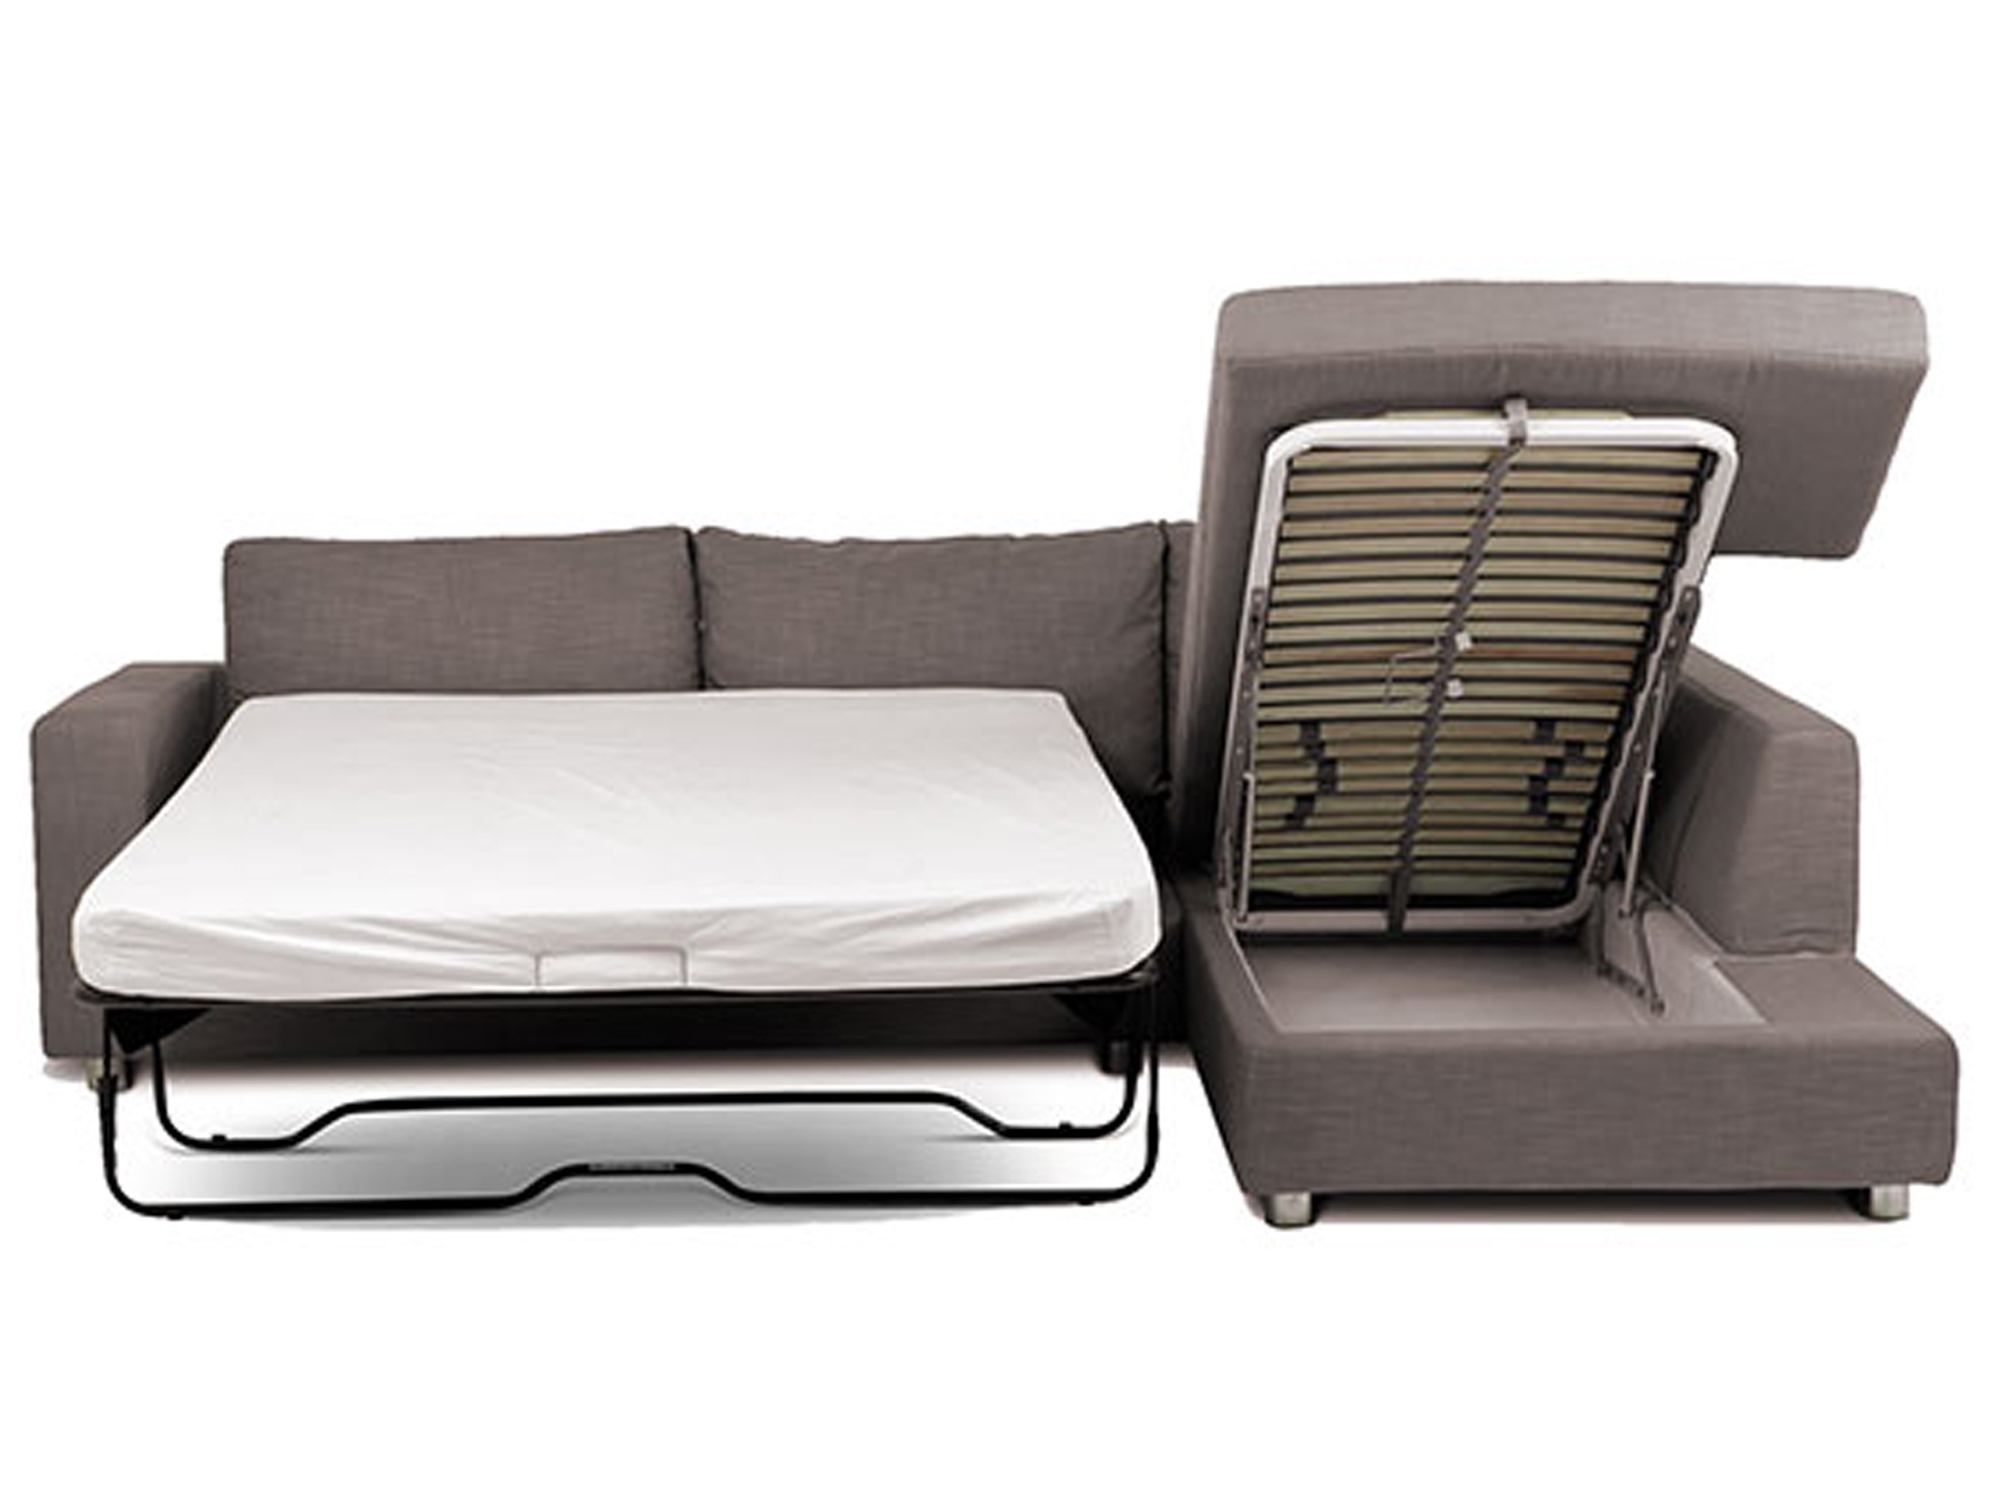 A Corner Sofa Bed For Your Home – Goodworksfurniture Within Most Popular Chaise Lounge Sofa Beds (View 1 of 15)